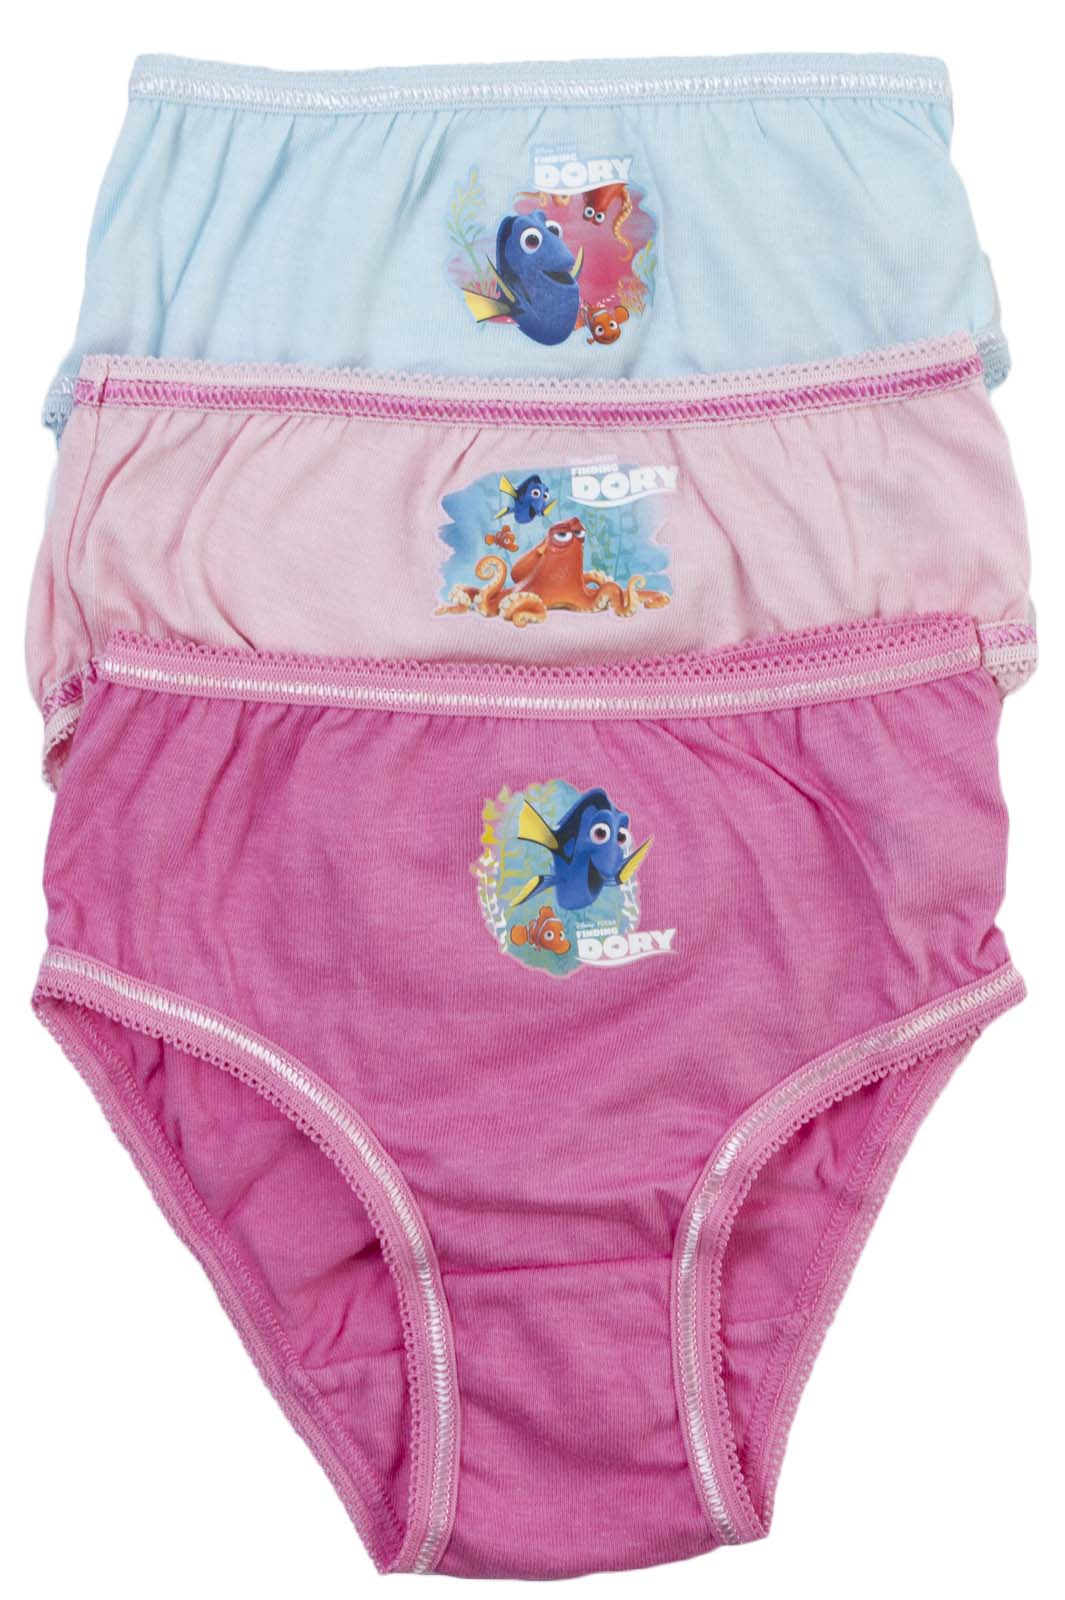 3 Pairs Girls Character Underwear 100% Cotton Knickers ...